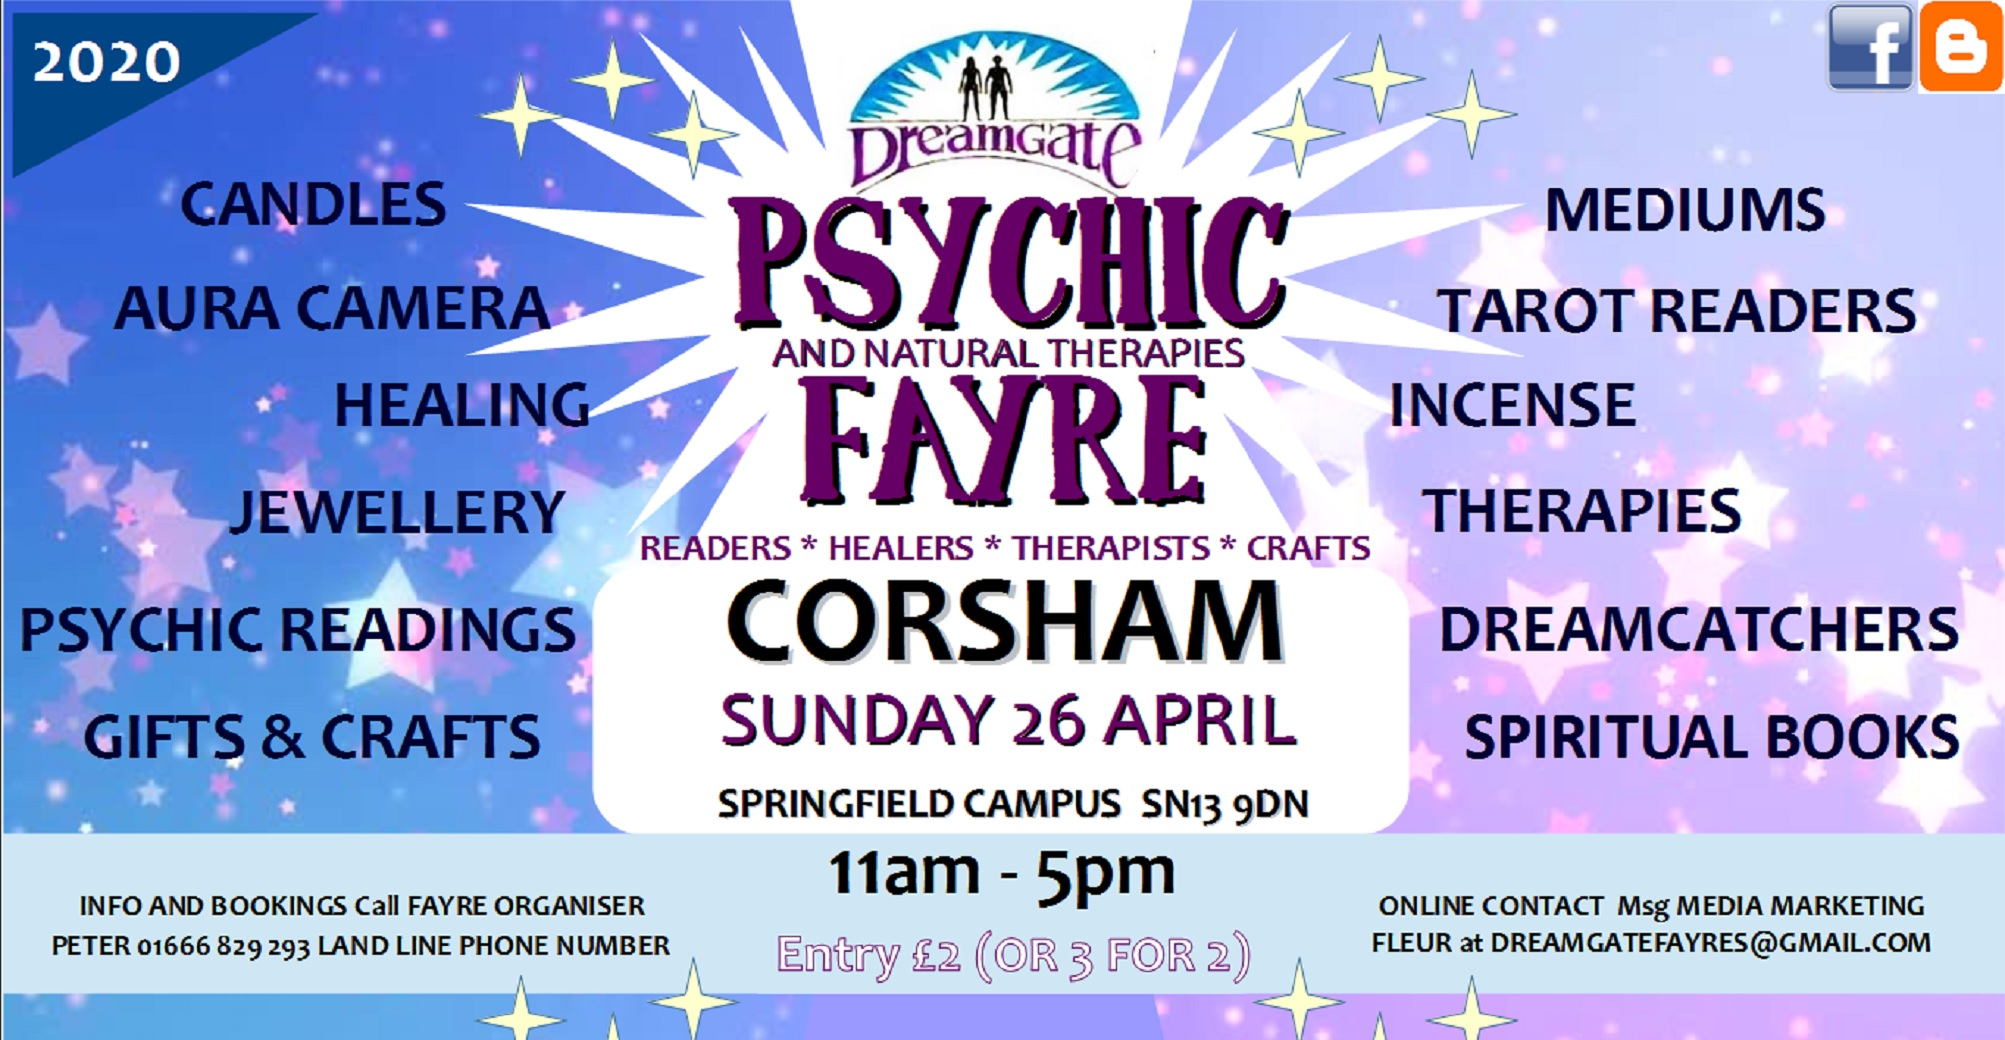 DreamGate Psychic Fayres